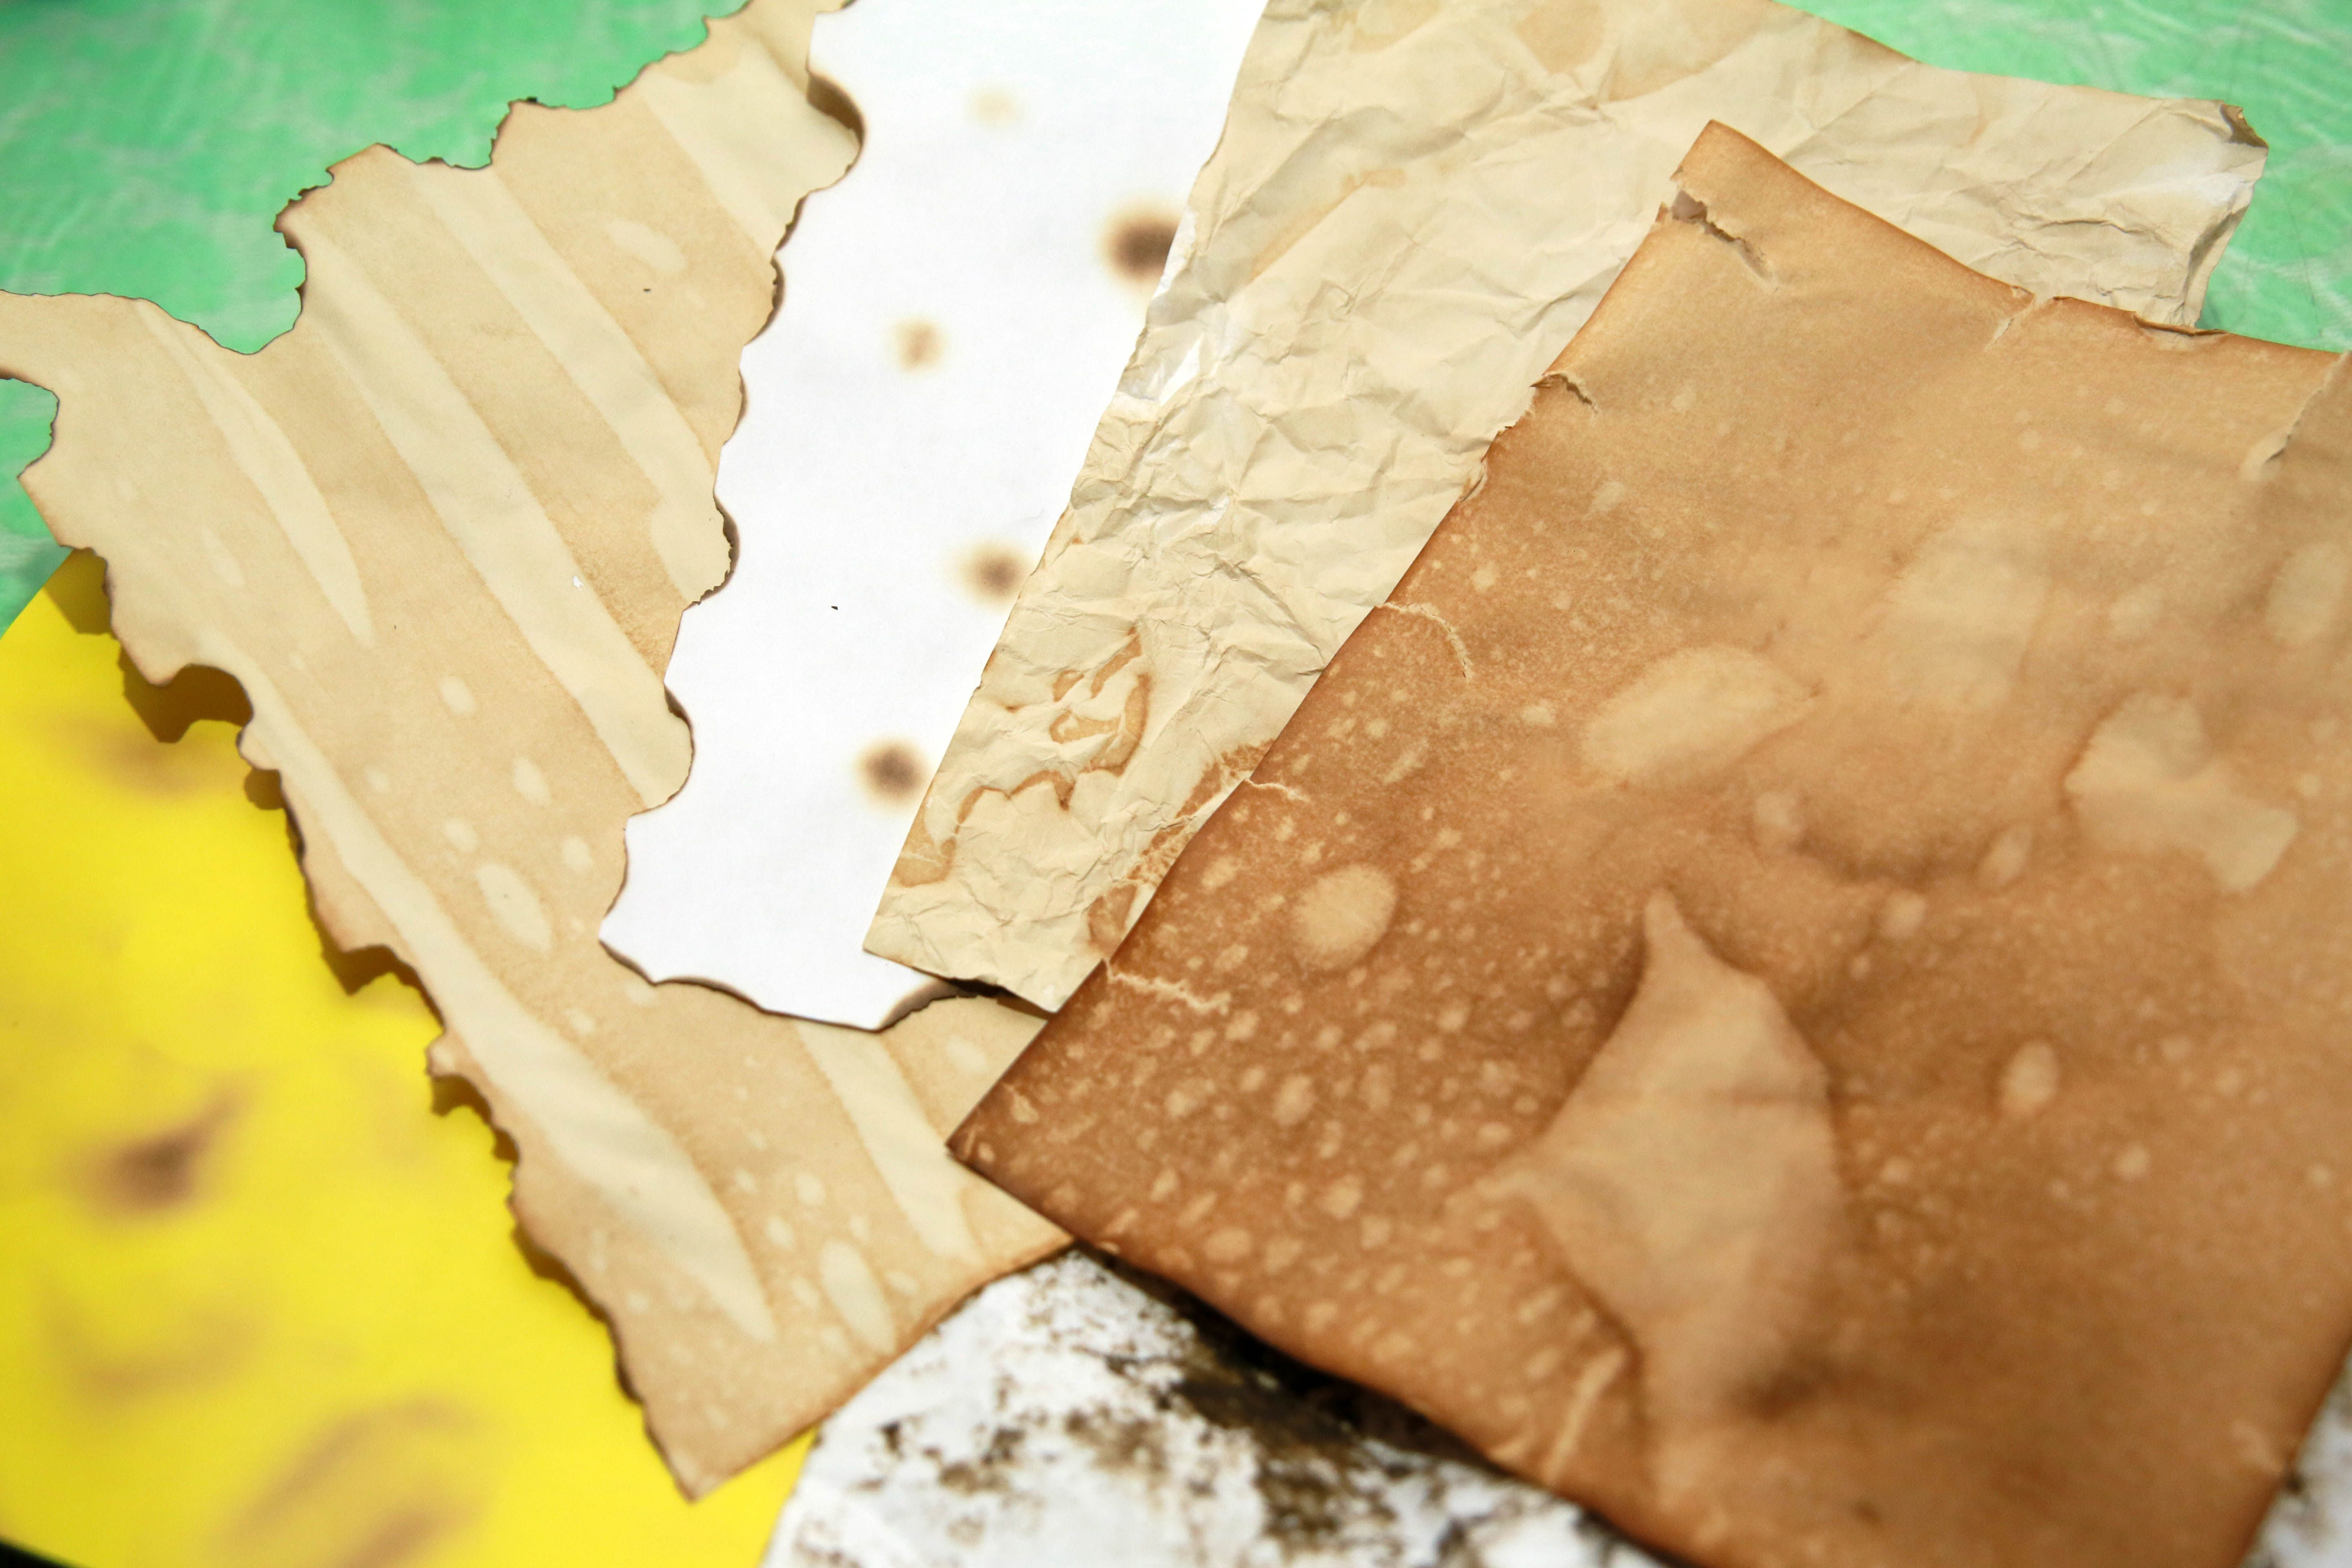 4 Easiest Steps To Make The Paper Appear Old With Images Brown